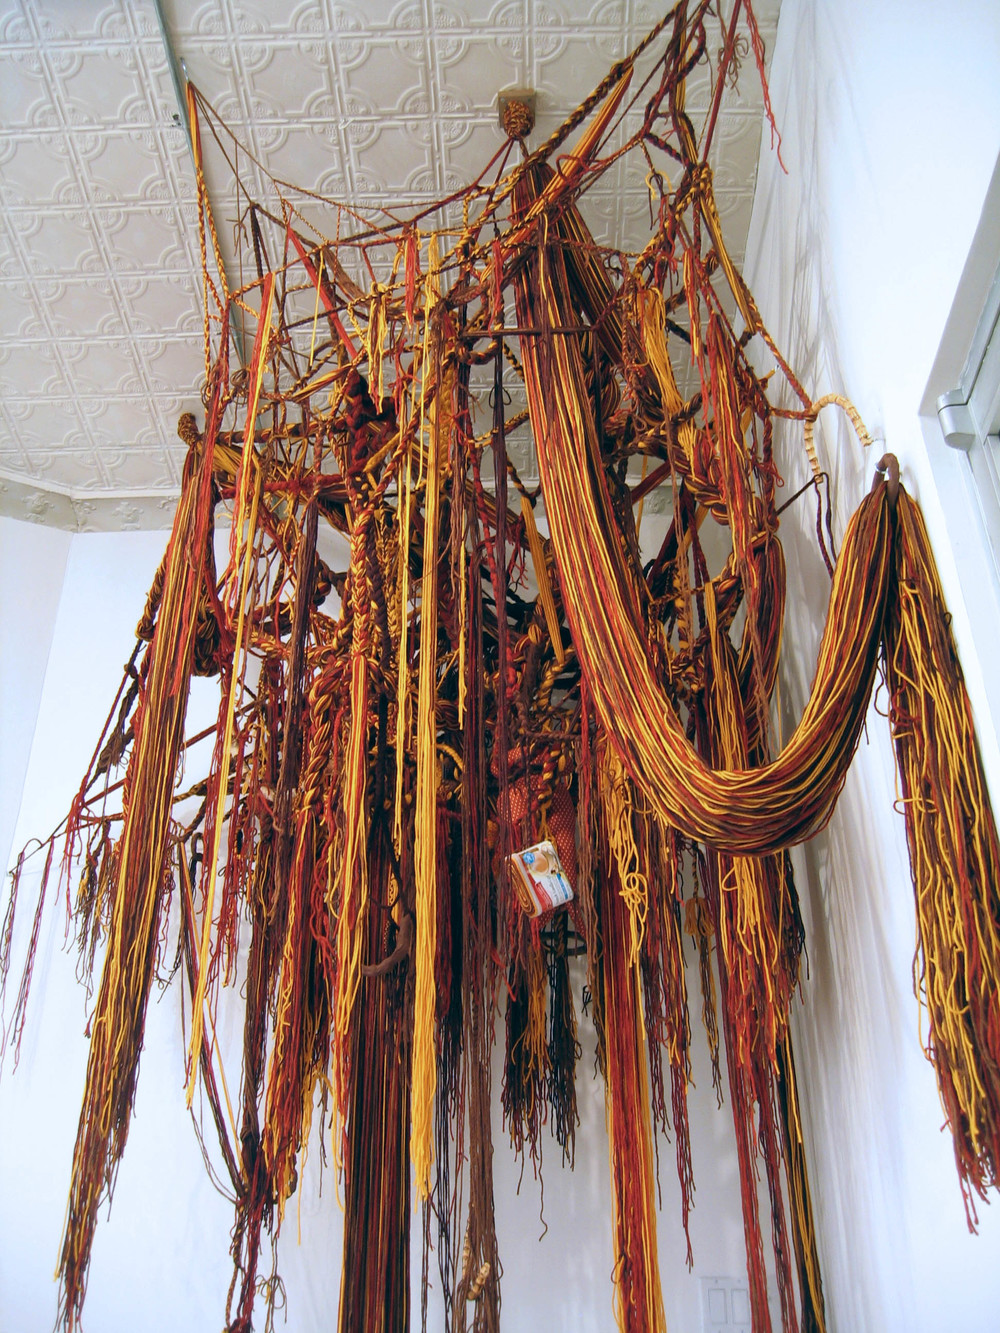 Indian Corn 2007 Acrylic yarn, clay, cork, fabric, bamboo and cans 7 x 6 x 11 feet (Detail)